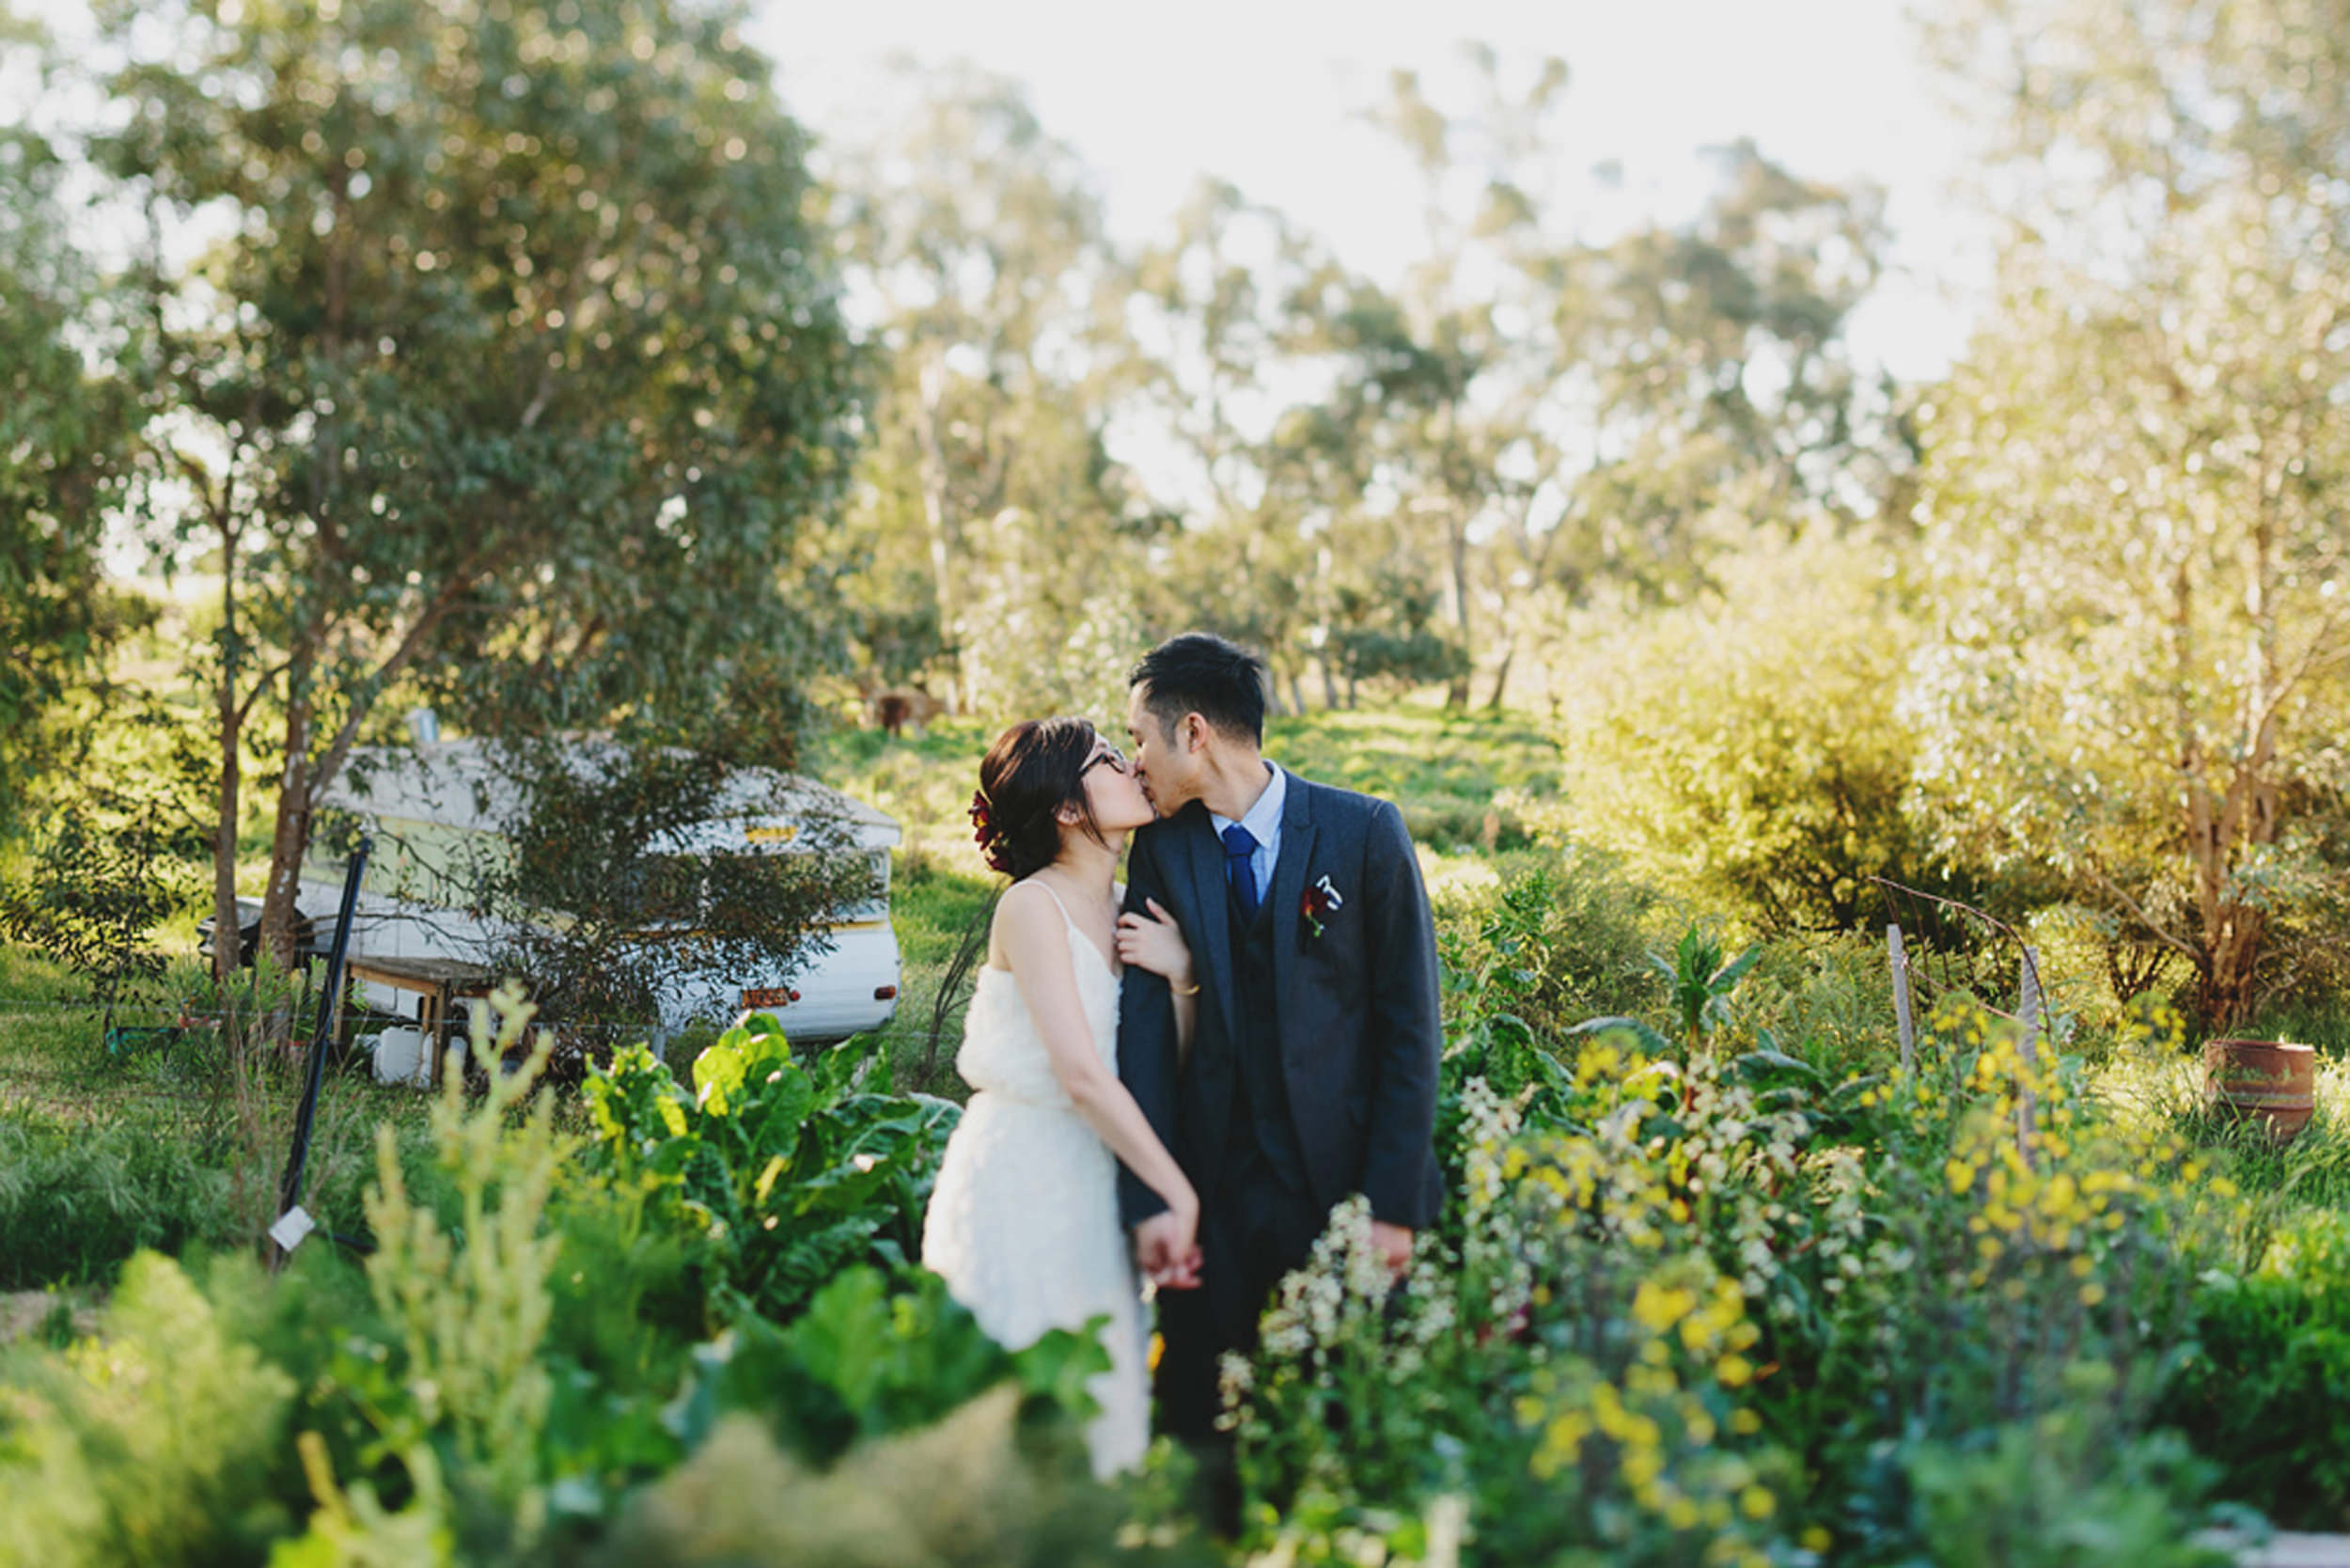 Butterland_Wedding_Anthony_Rachel79.JPG